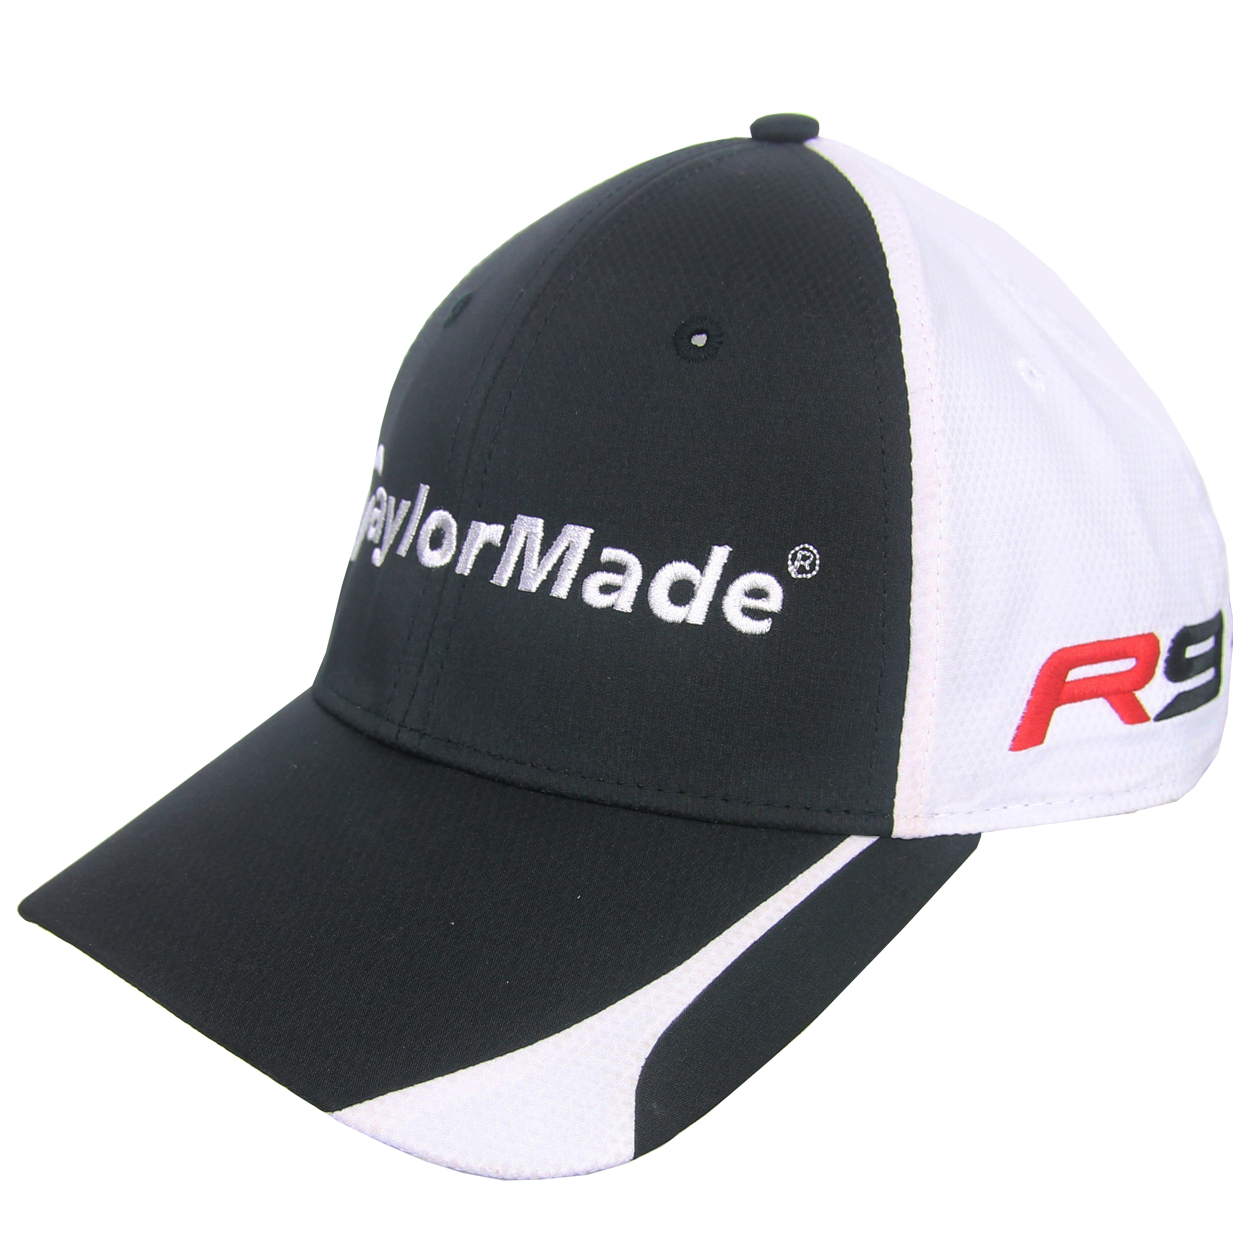 Top golfing brands (including Callaway and TaylorMade) sold at discount prices. Buy golf clubs (including men's, ladies and junior clubs), golf club sets, golf shoes and much more.